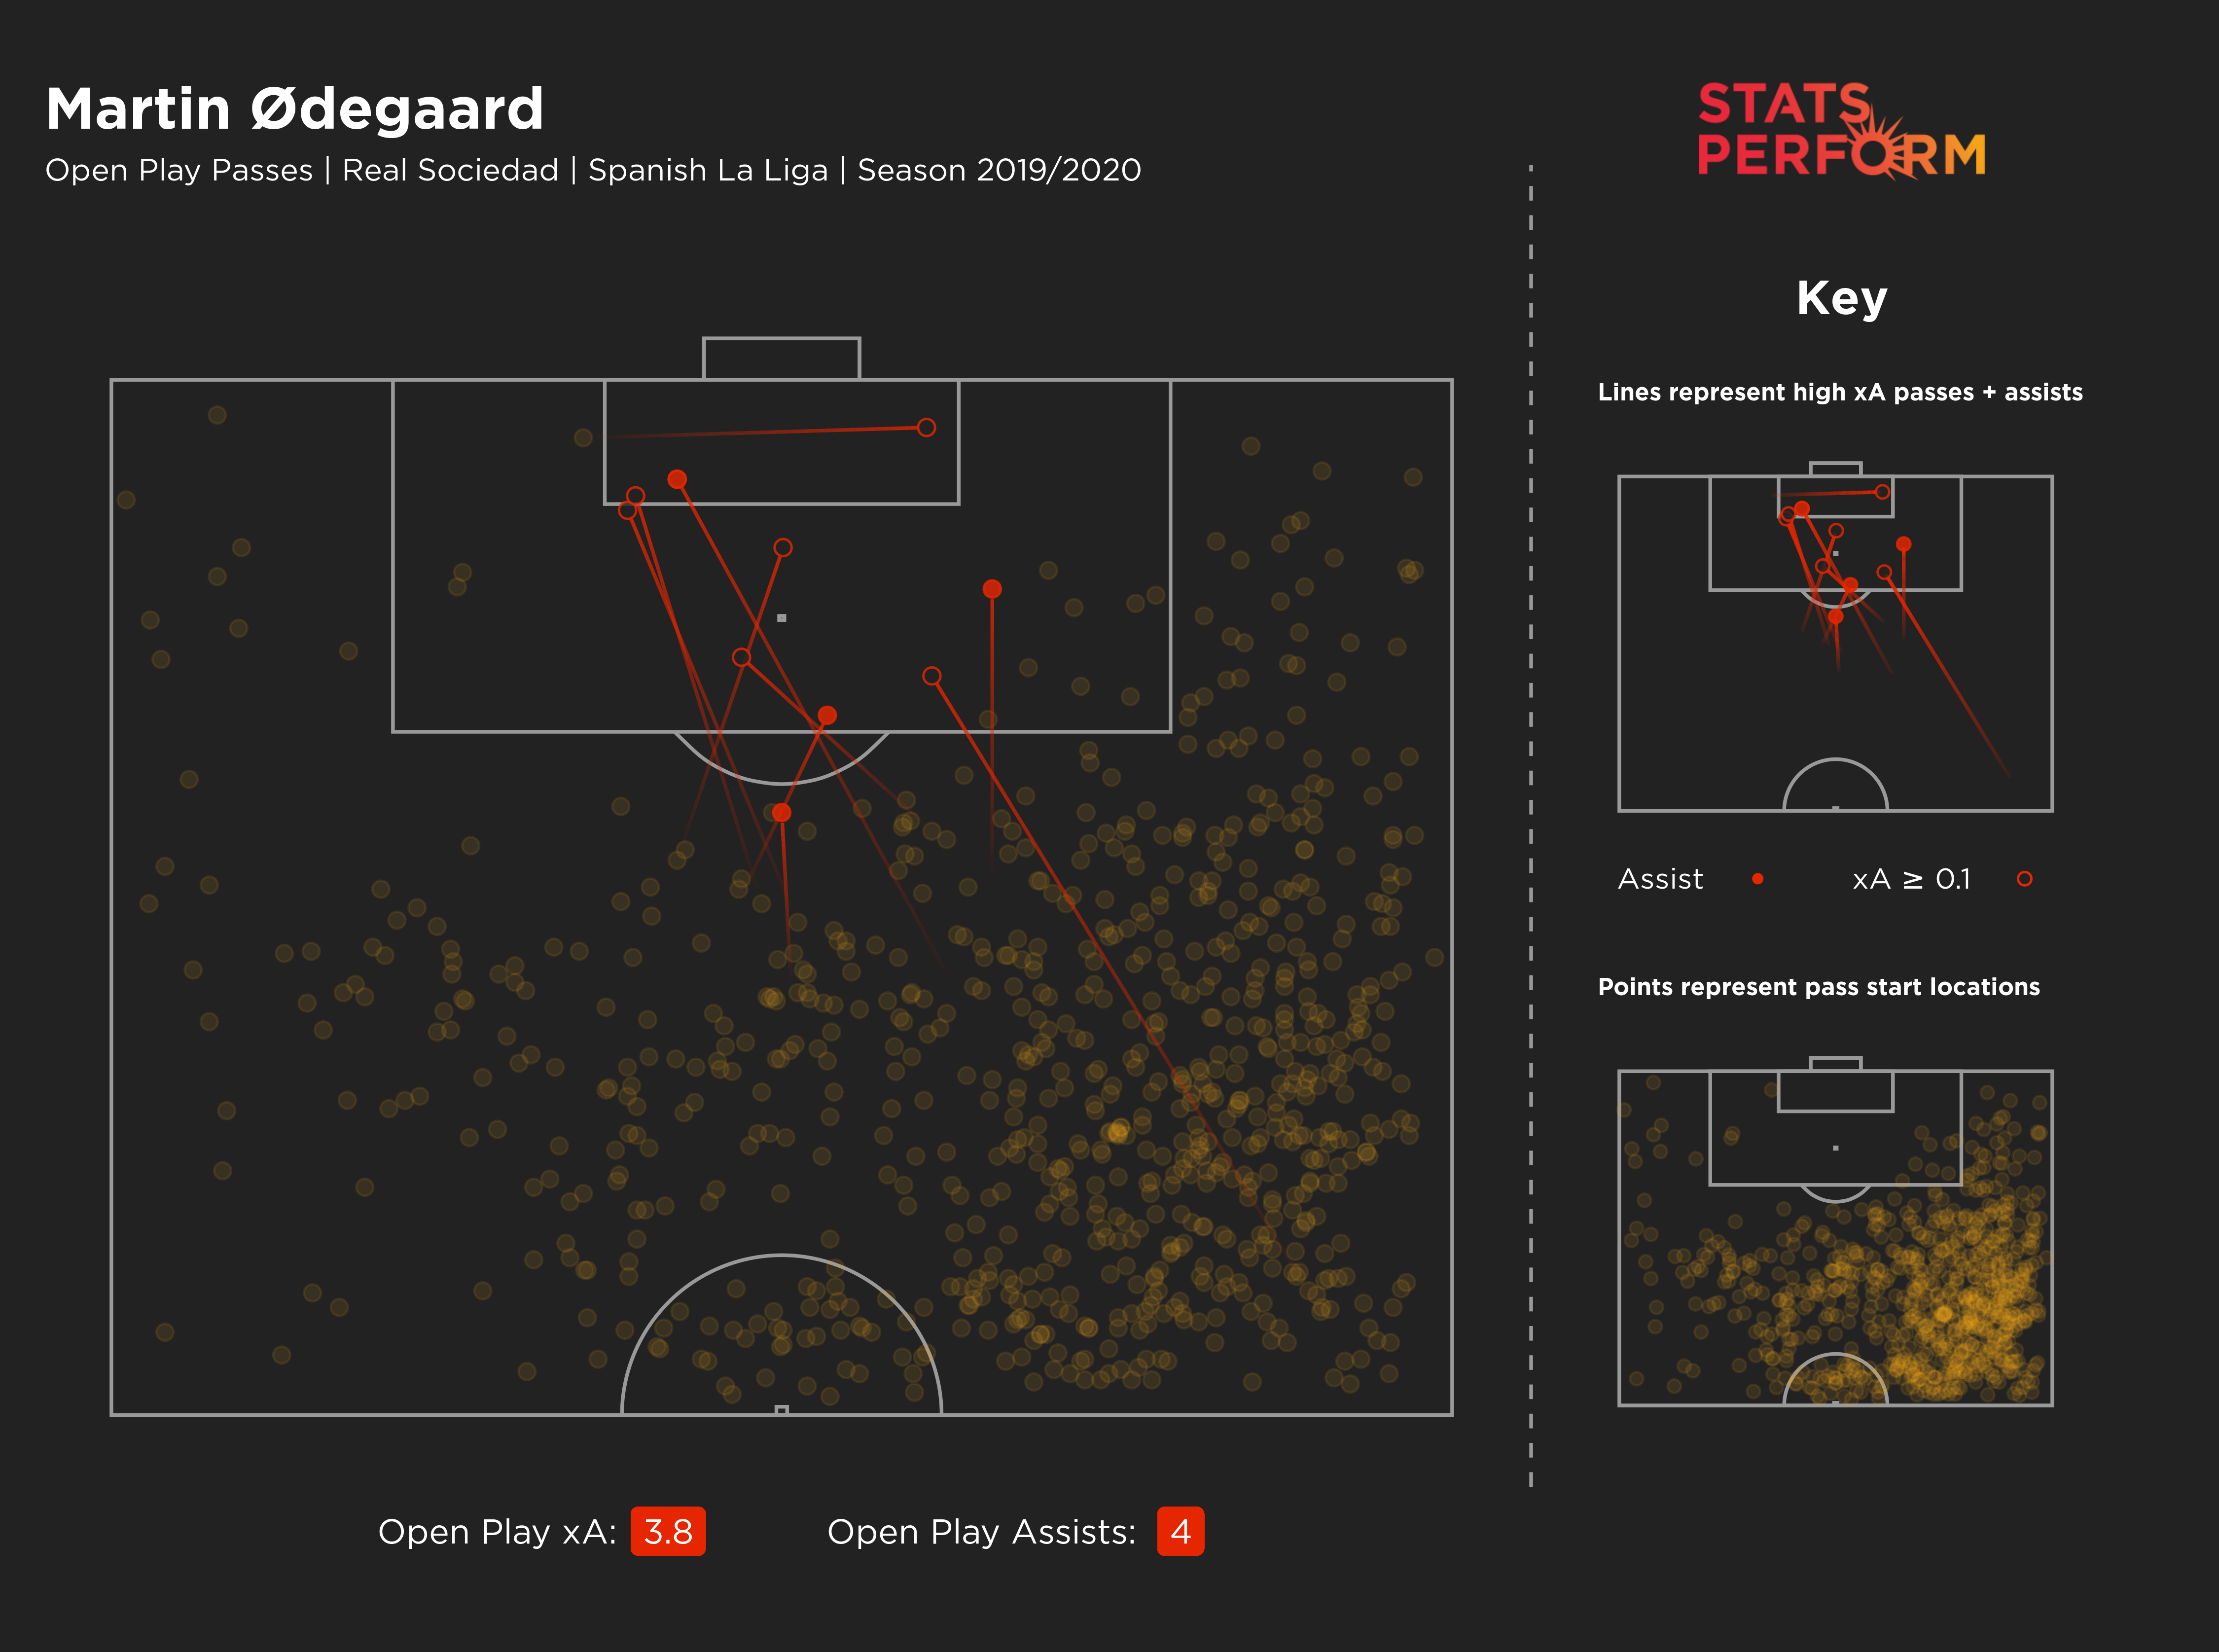 Martin Odegaard's expected assists map from last season